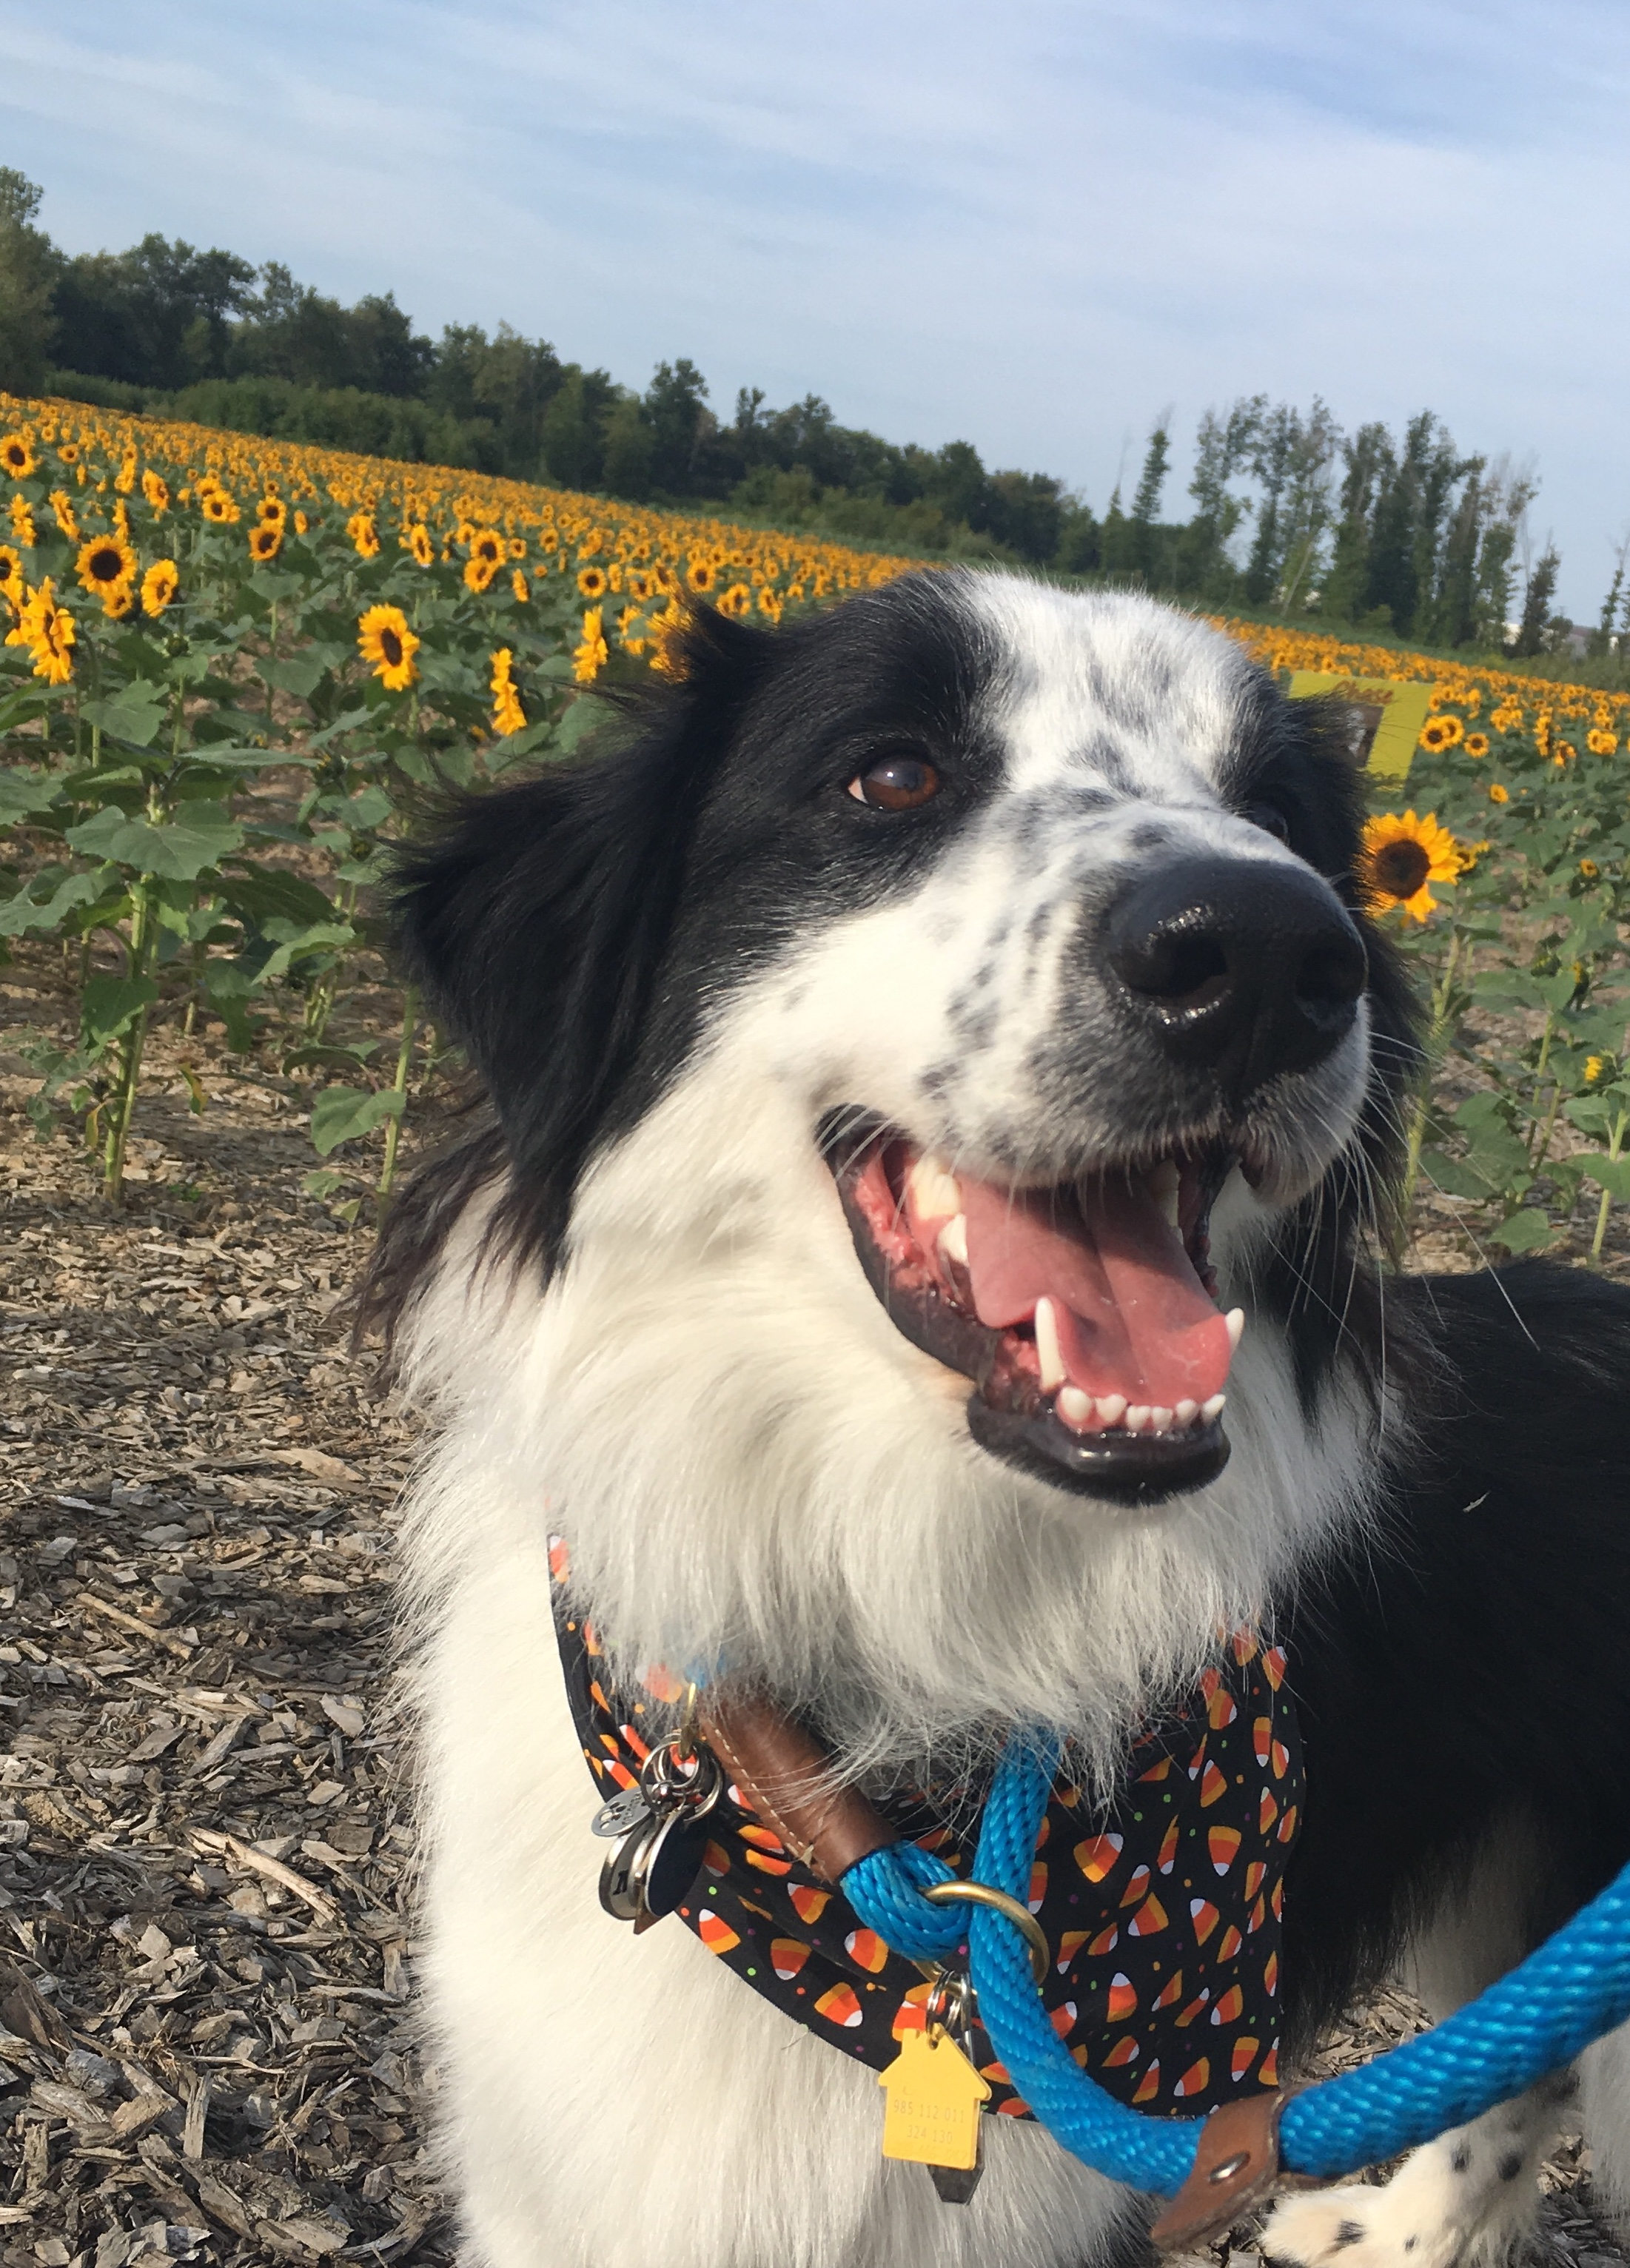 Enzo (Tex) will have been with me 6 months this month! After losing my senior Border Collie best friend, I was lost. When I saw Enzo I knew he could be the one to help me heal and once I […]